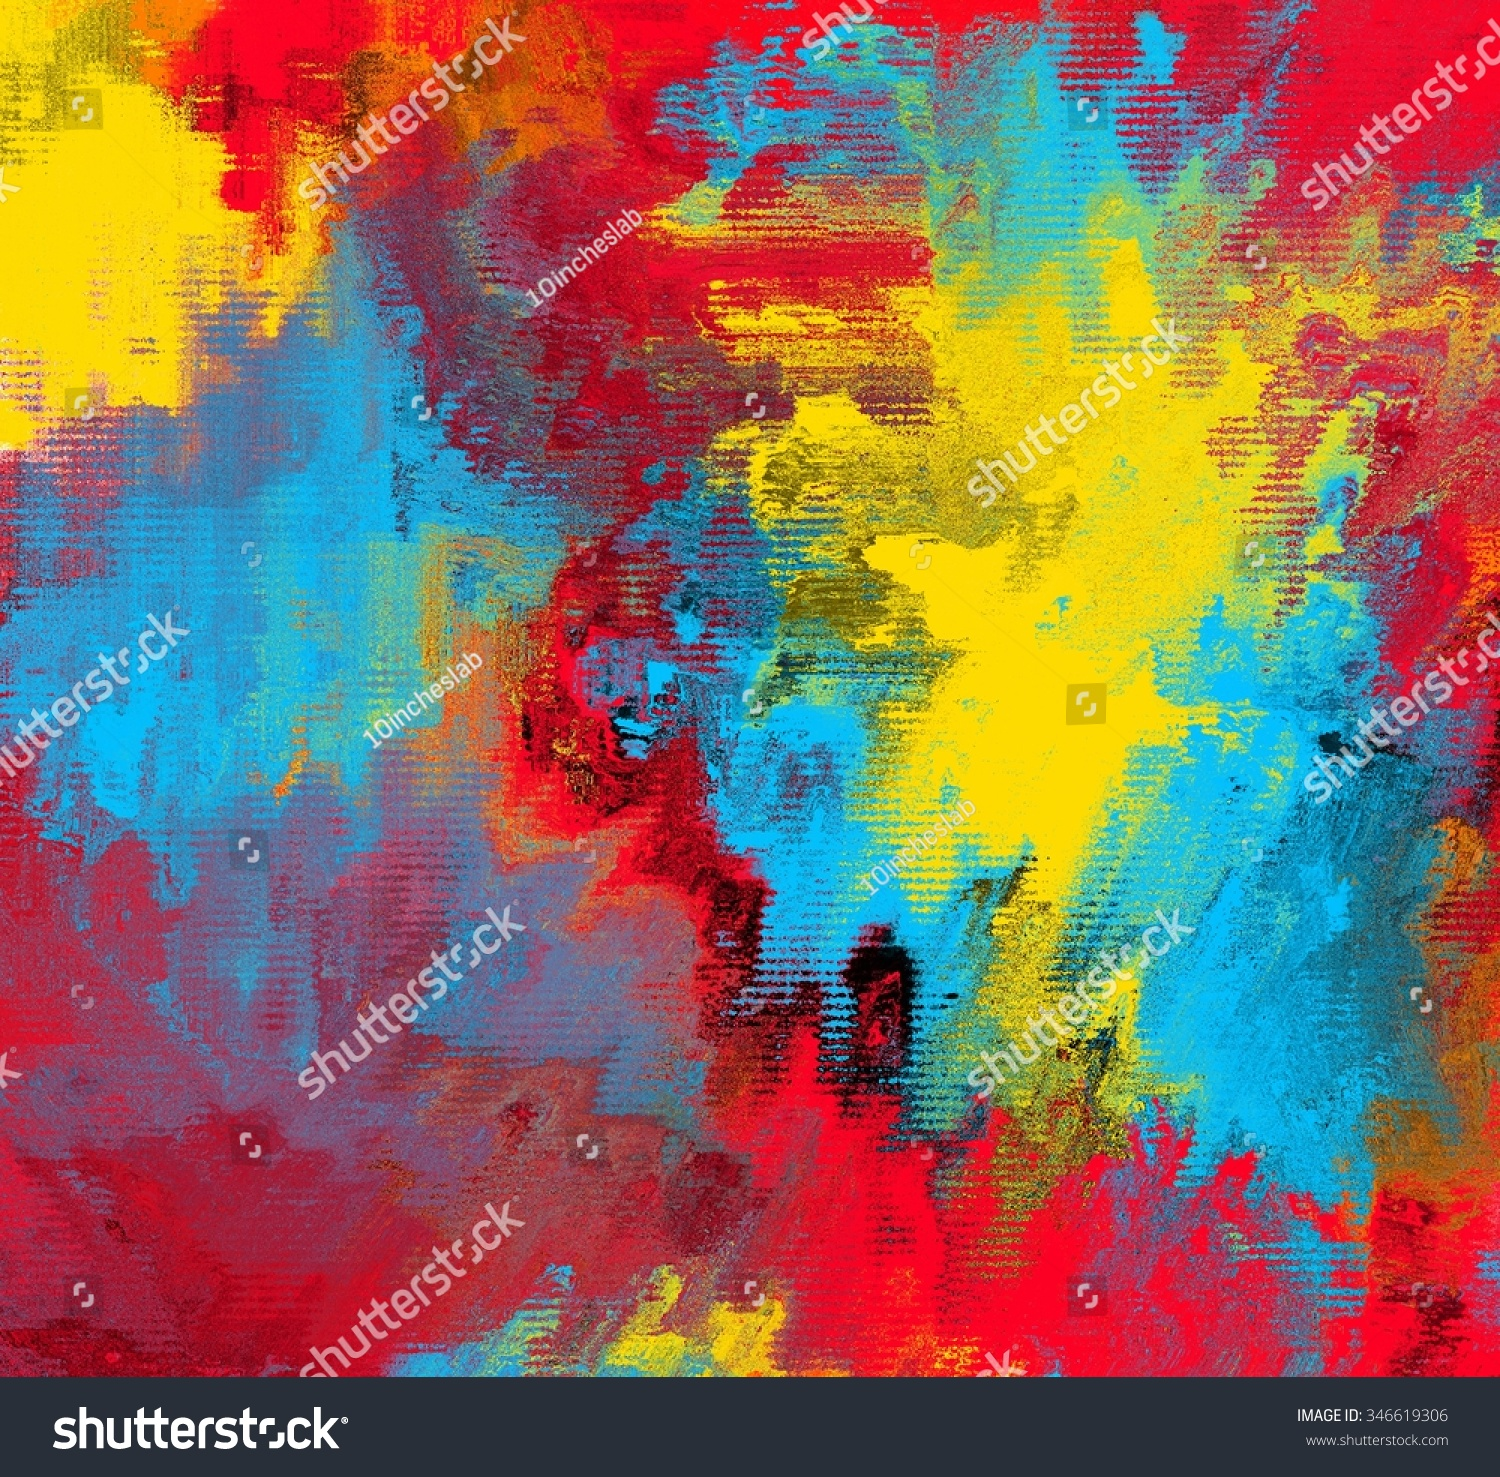 Red Blue Yellow Abstract Painting Texture Stock Illustration